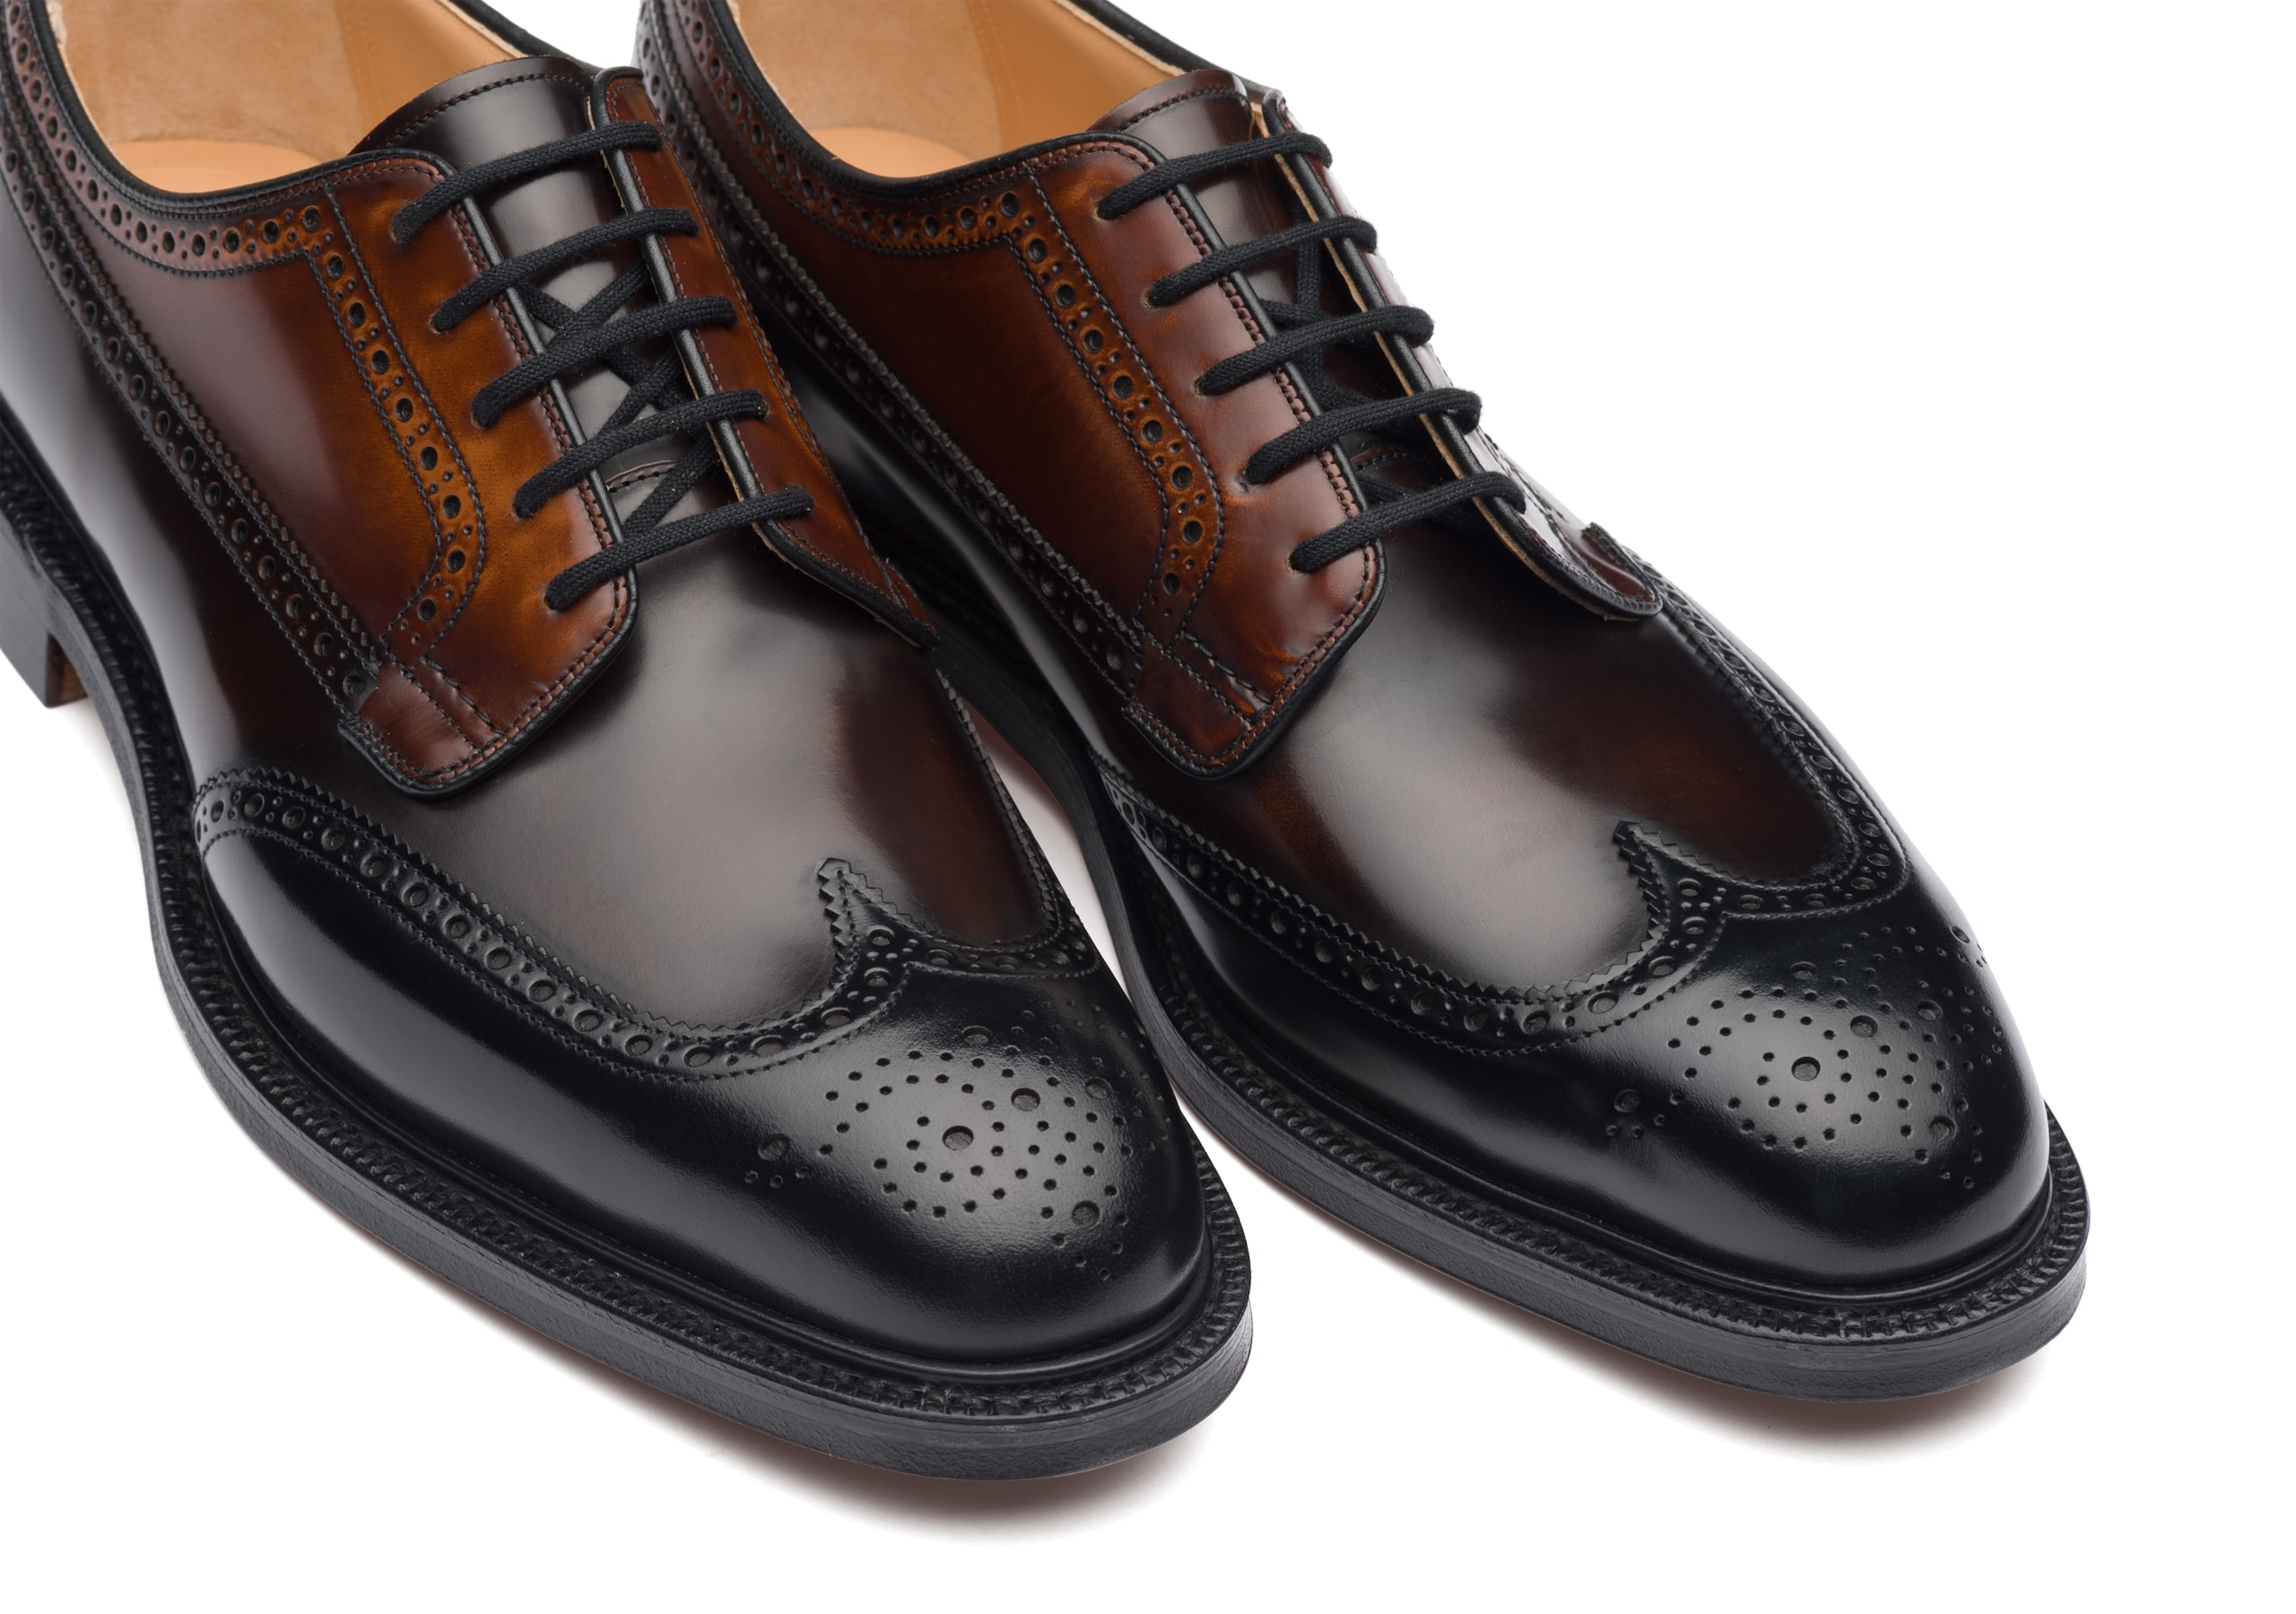 Grafton 173 Church's Polished Binder Derby Brogue Tricolor Black